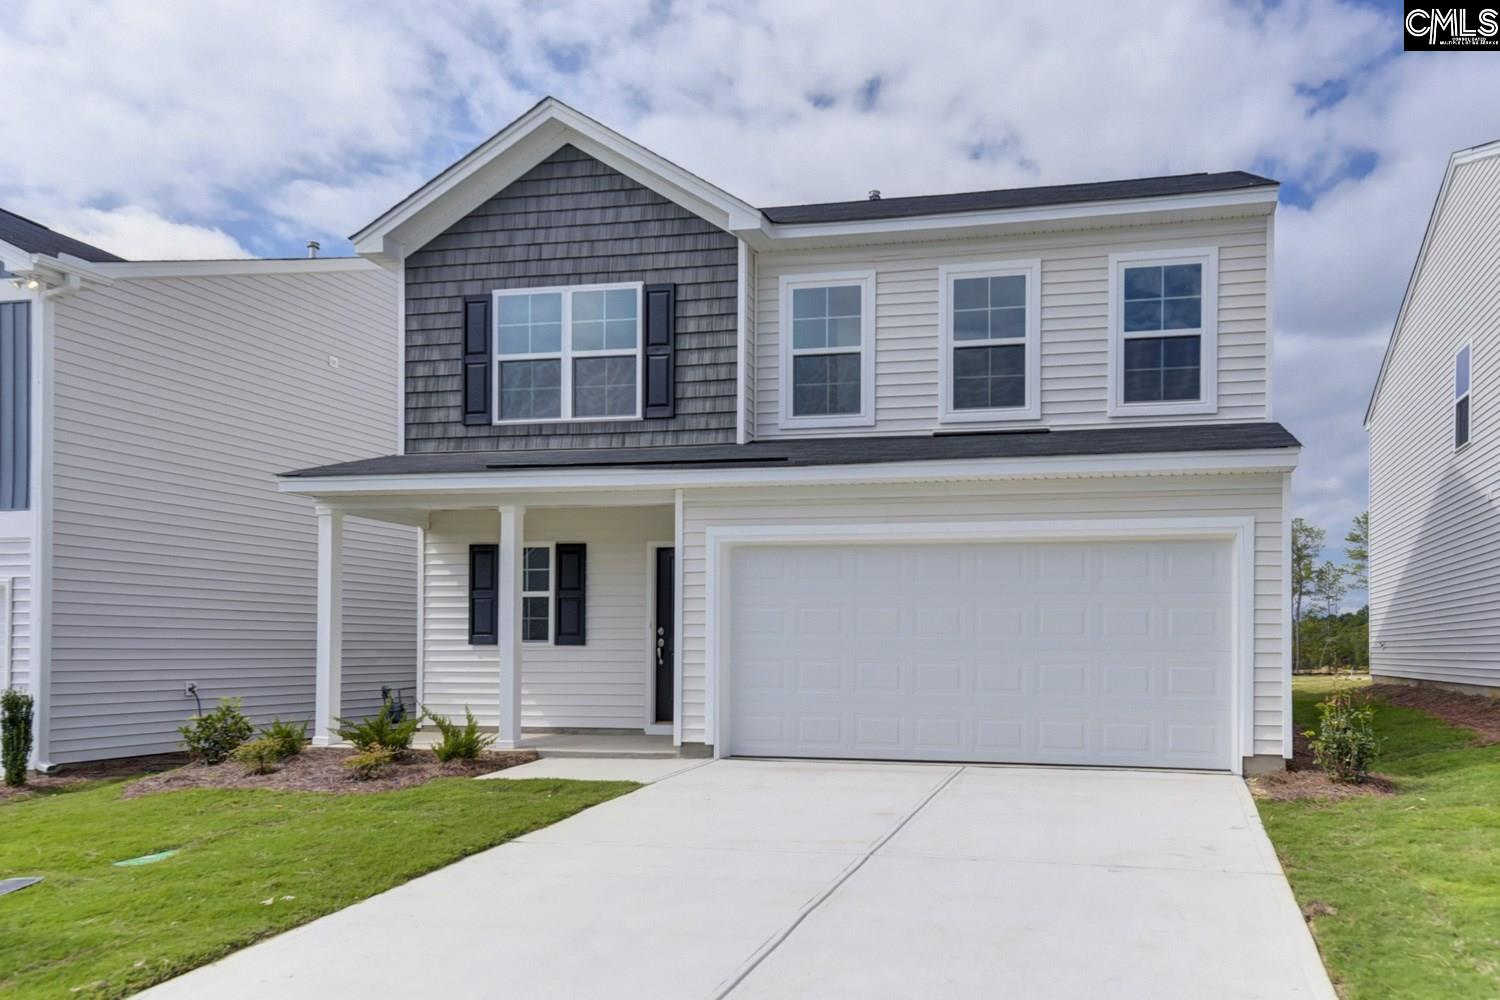 547 Hatter Windfall Blythewood, SC 29016